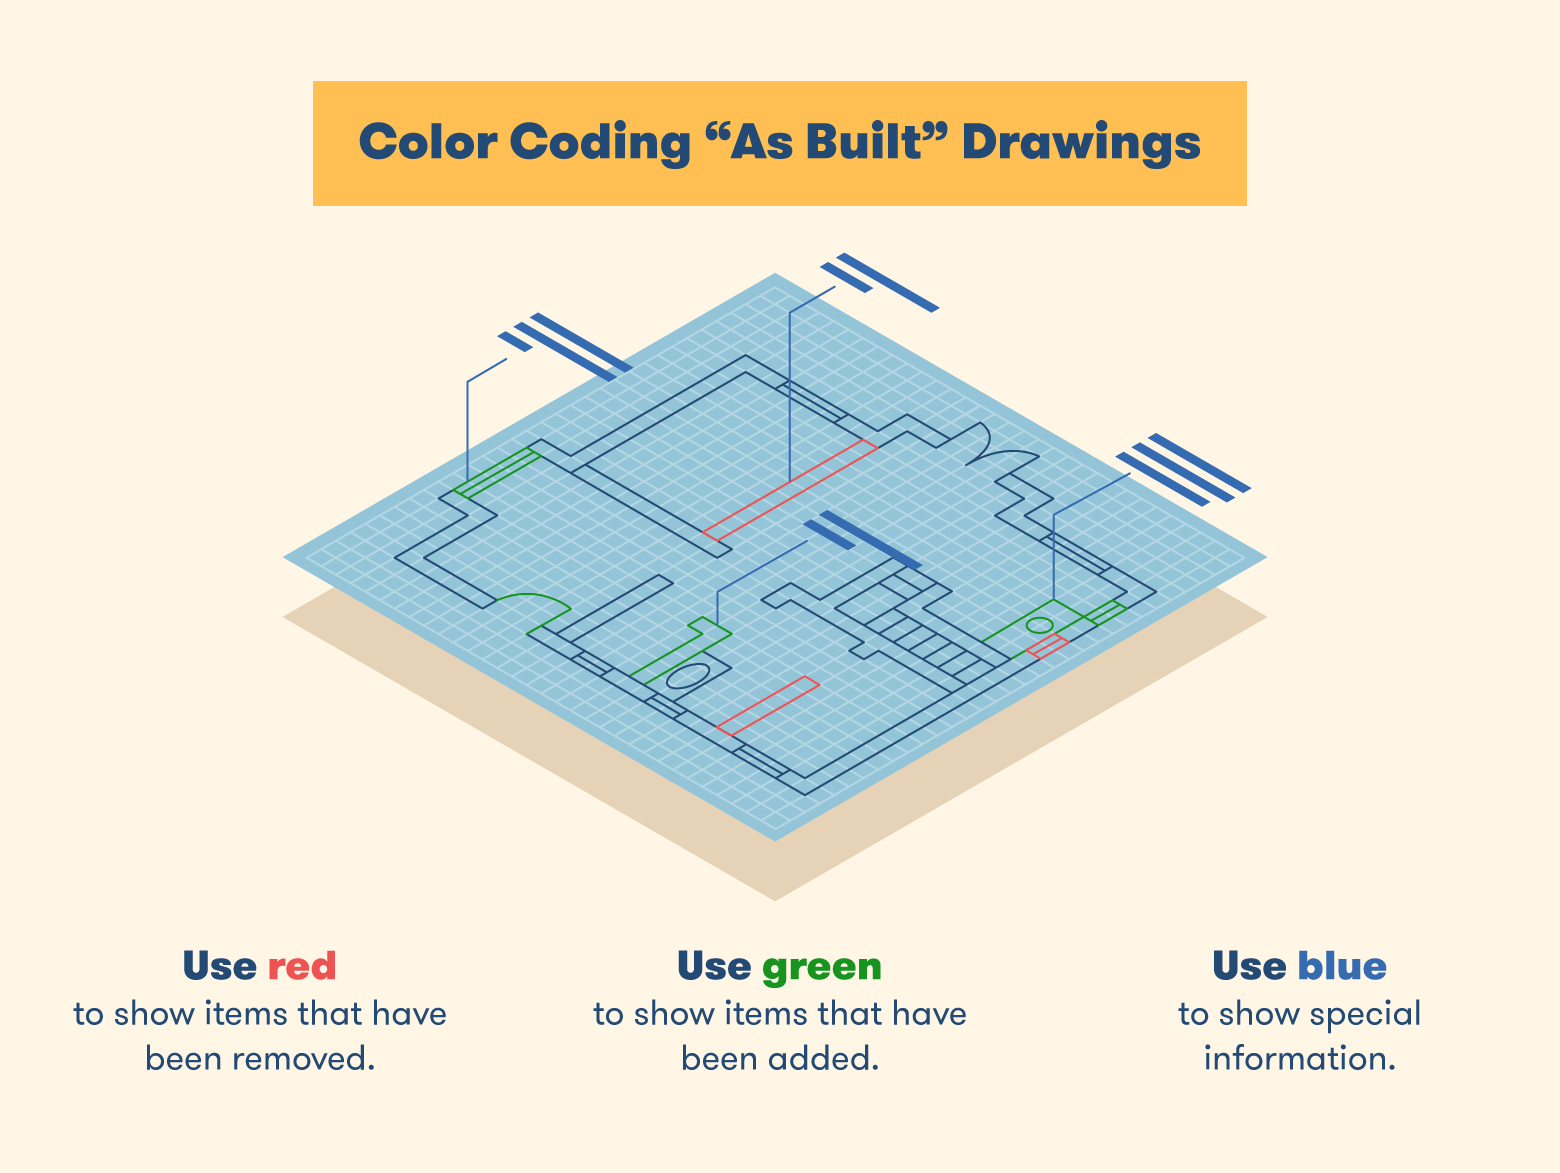 Here is how you can color code your as built drawings